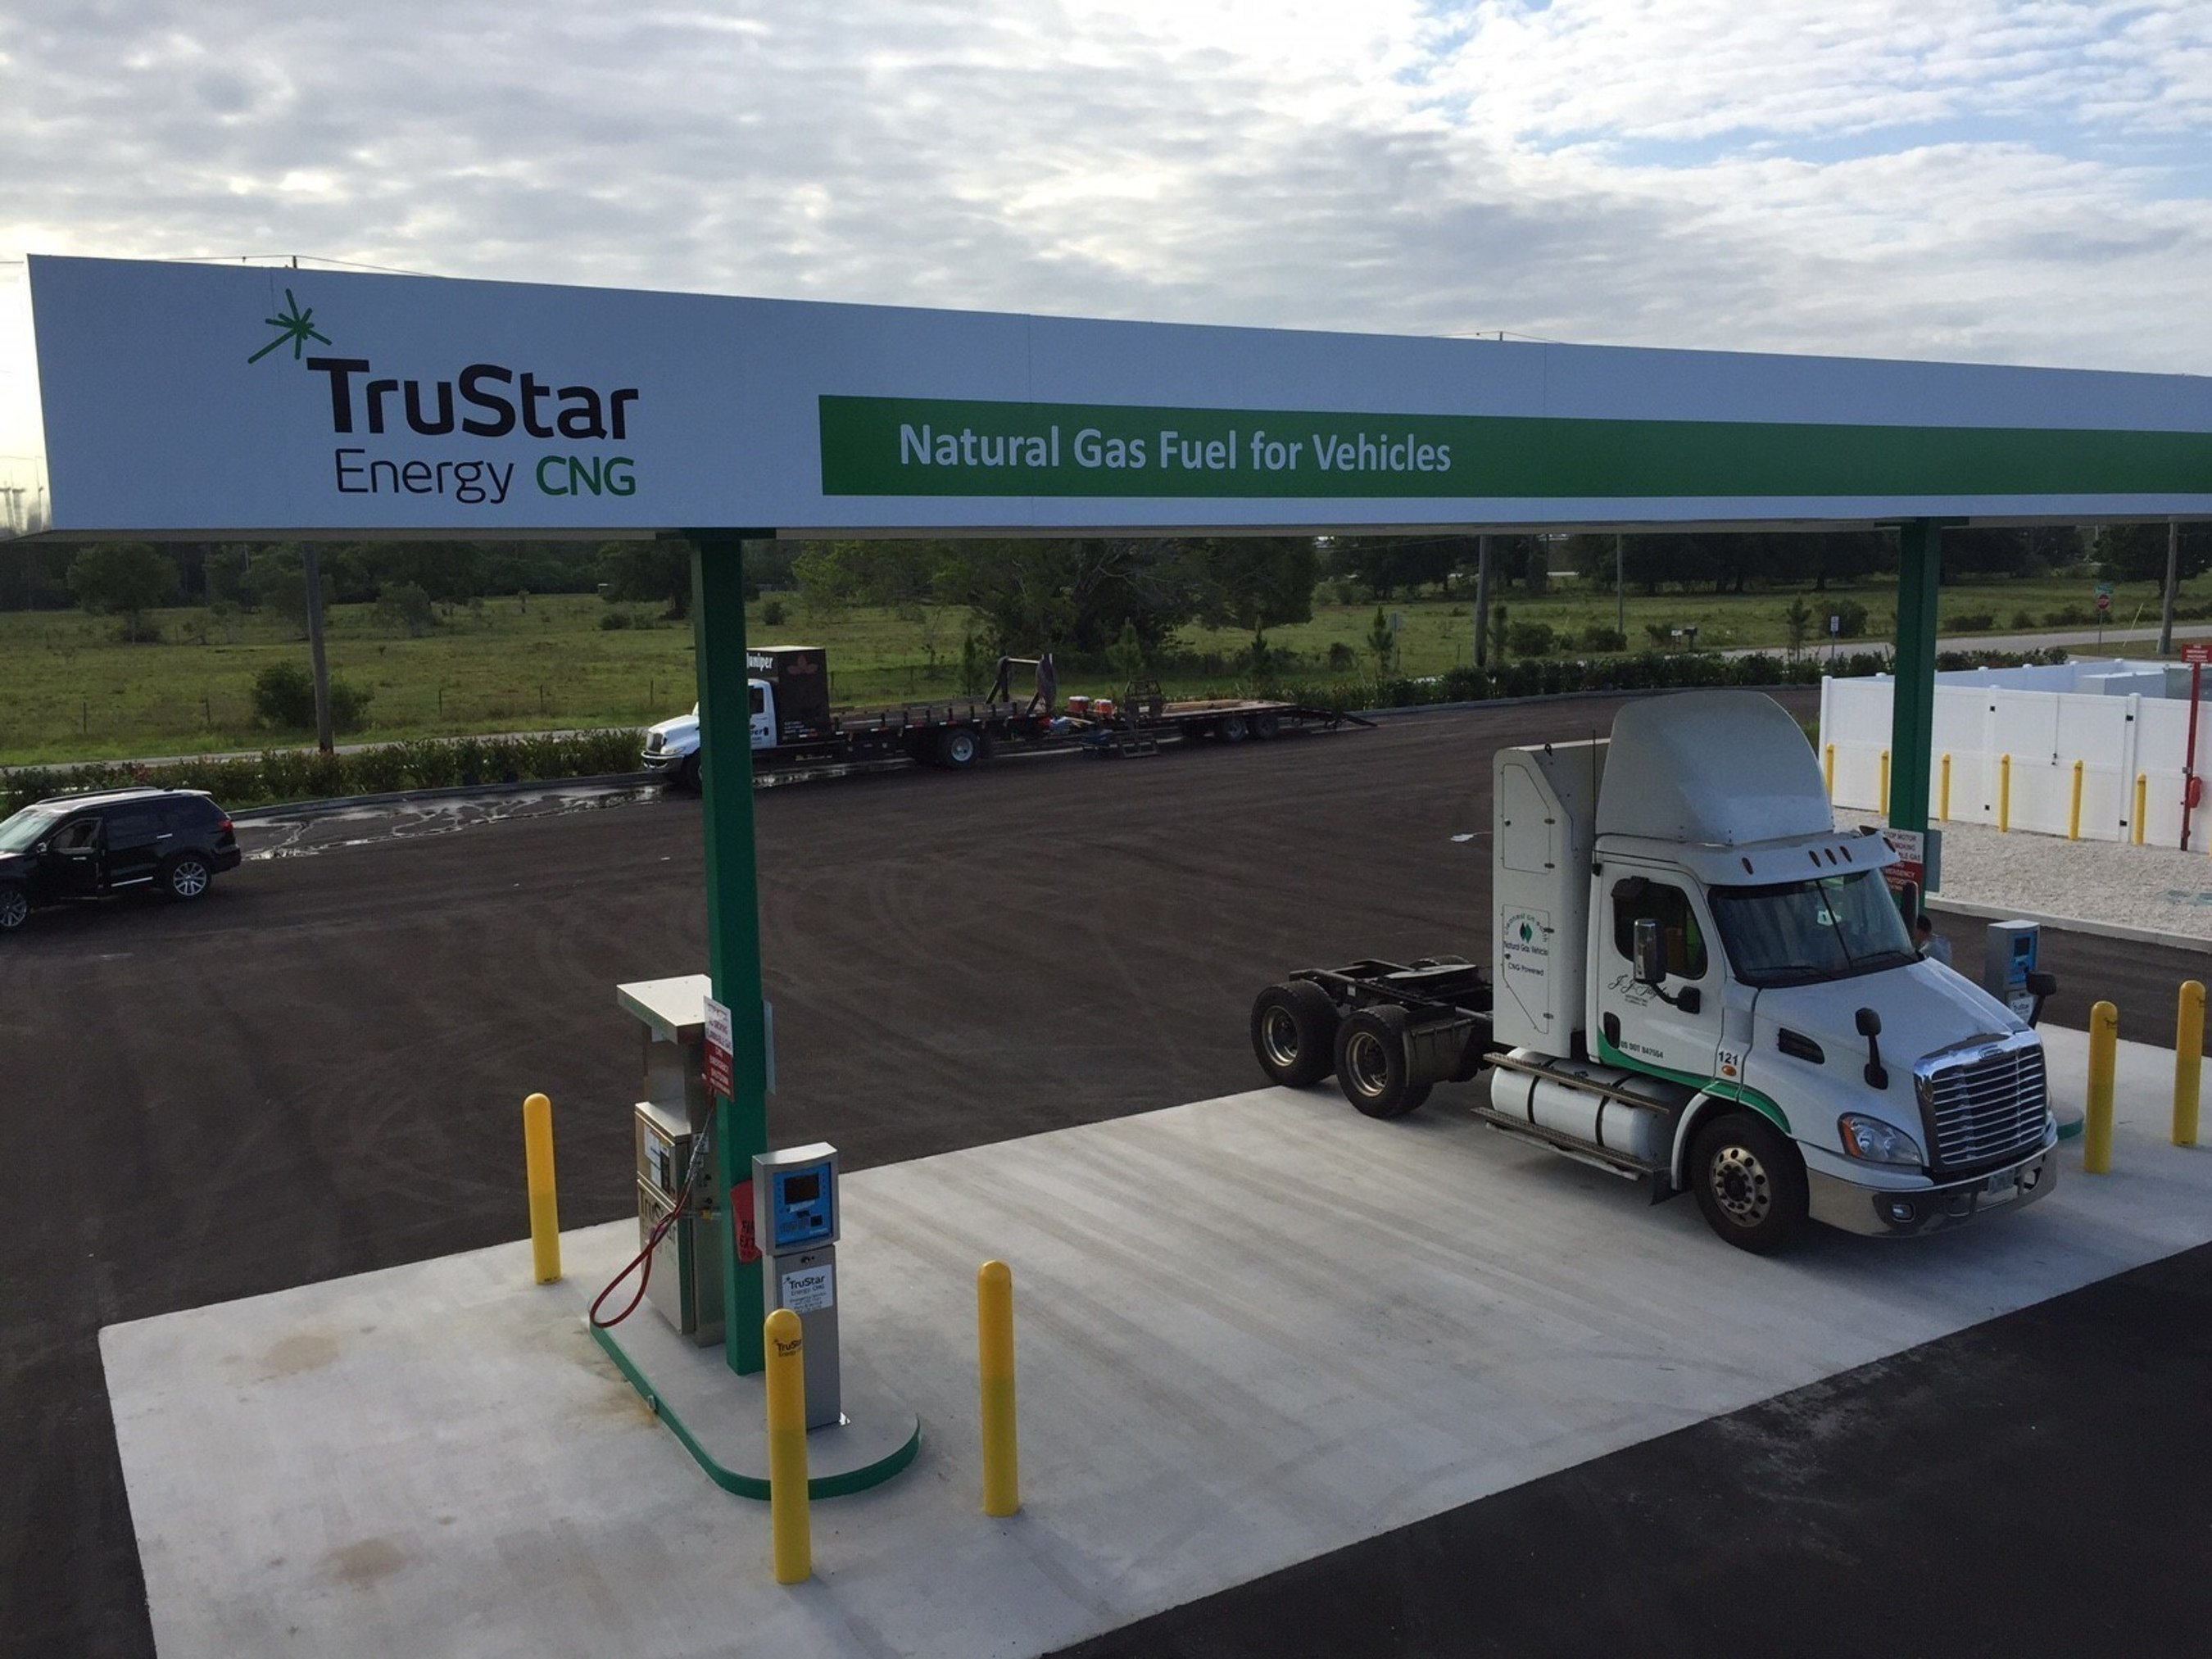 TruStar Energy-owned public CNG fueling station at 5345 Dividend Drive, Fort Myers, Florida.